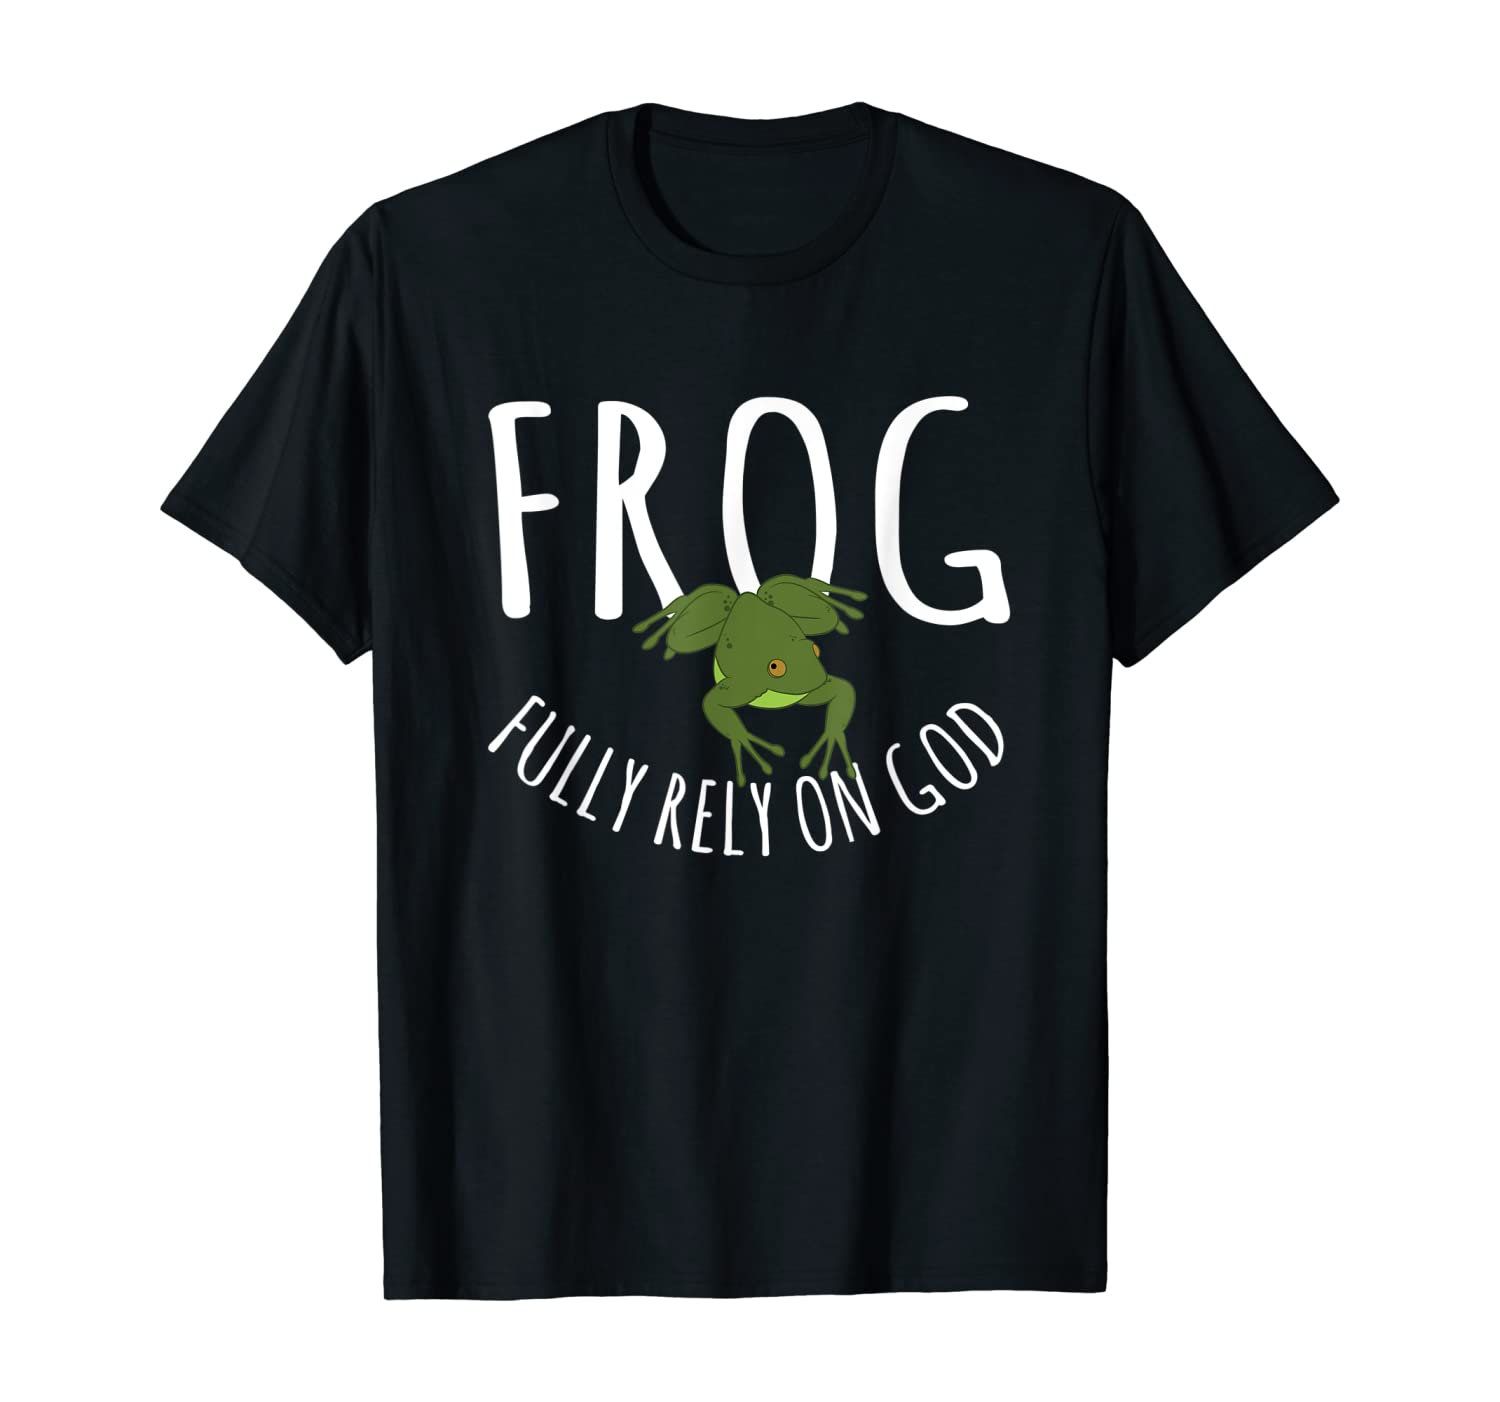 Frog Gifts - Frog Fully Rely On God T-Shirt